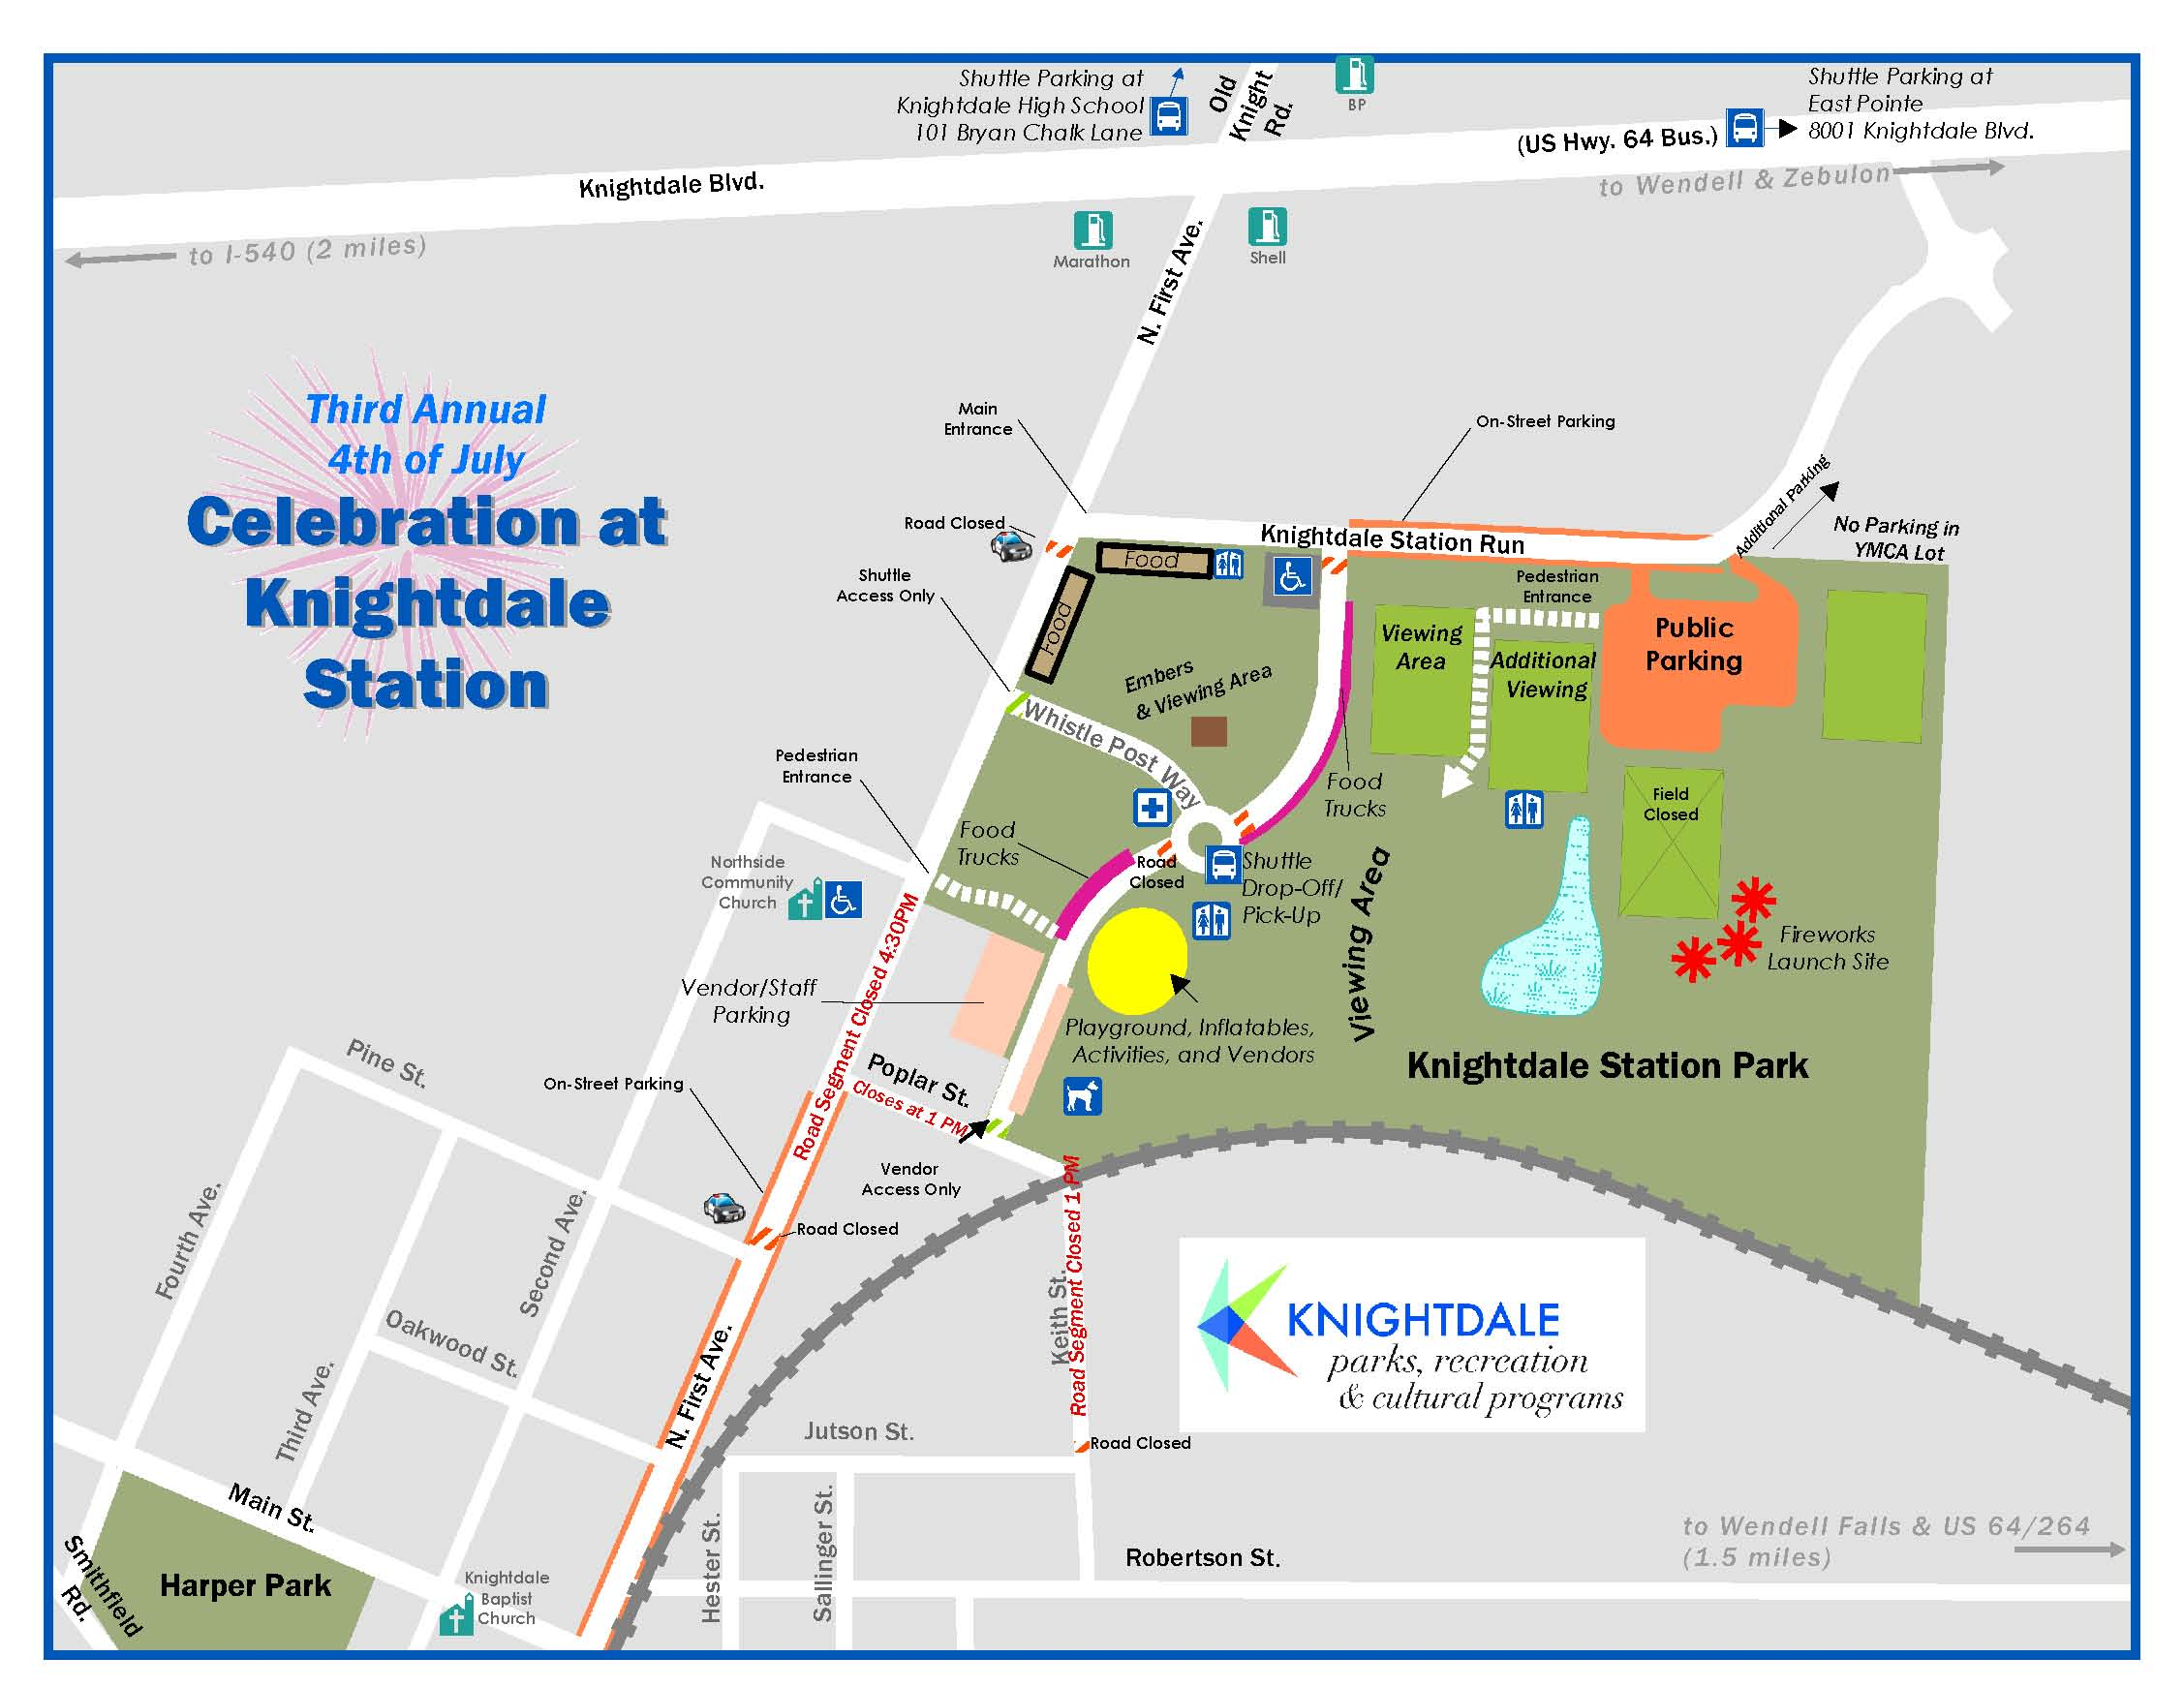 knightdale nc holding third annual celebration july 4th